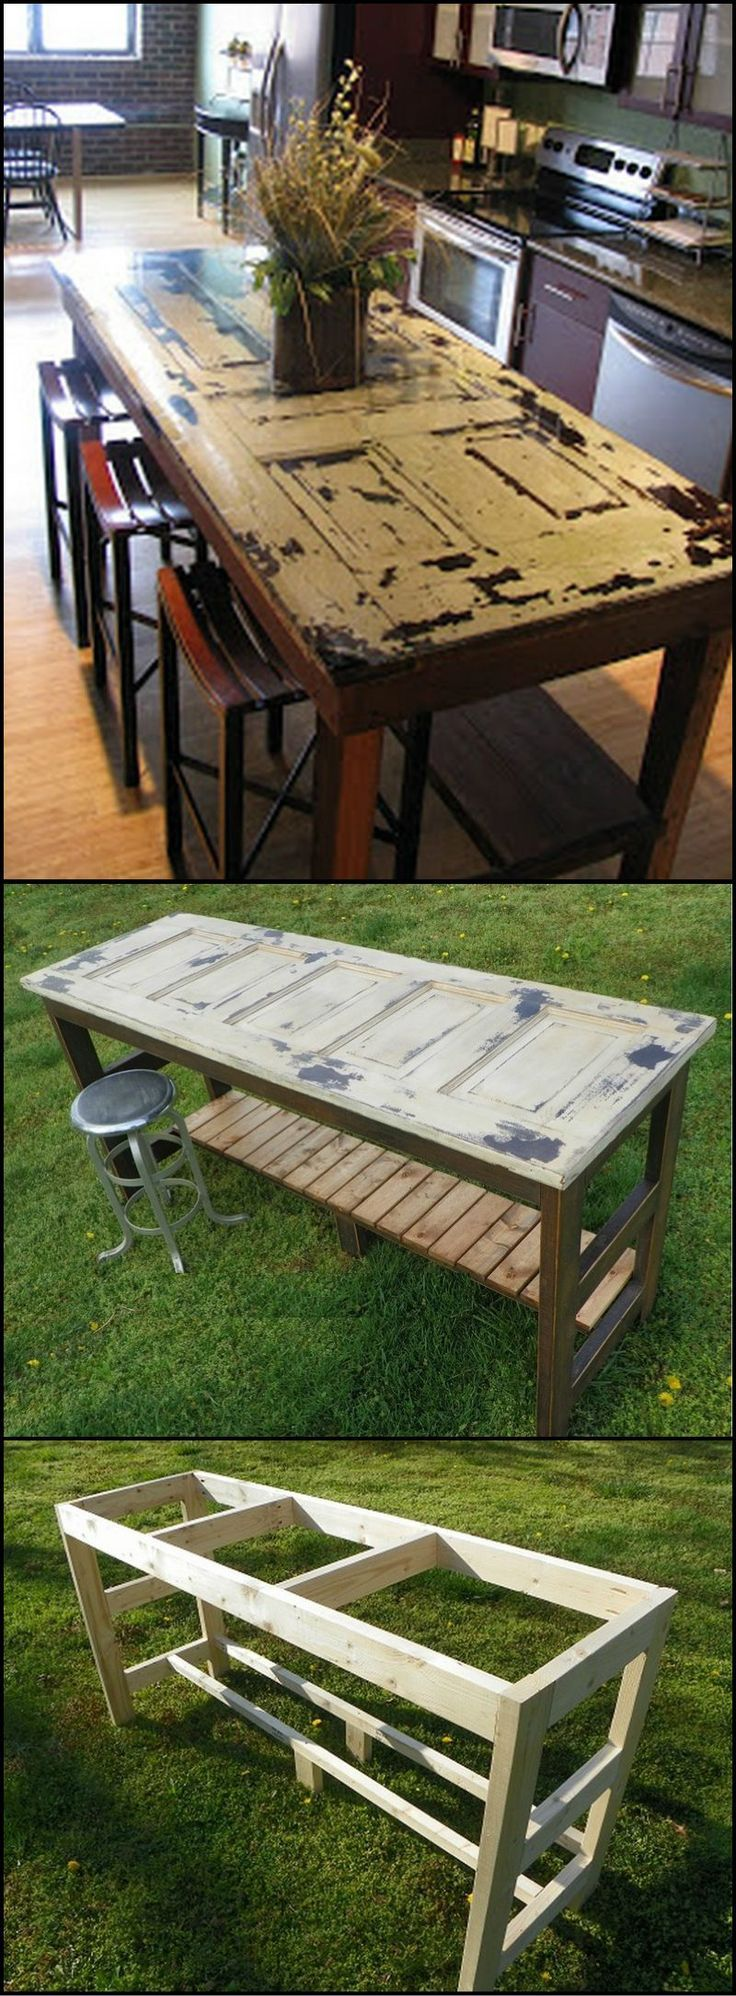 Outdoor table top ideas - How To Build A Kitchen Island From An Old Door Http Theownerbuildernetwork